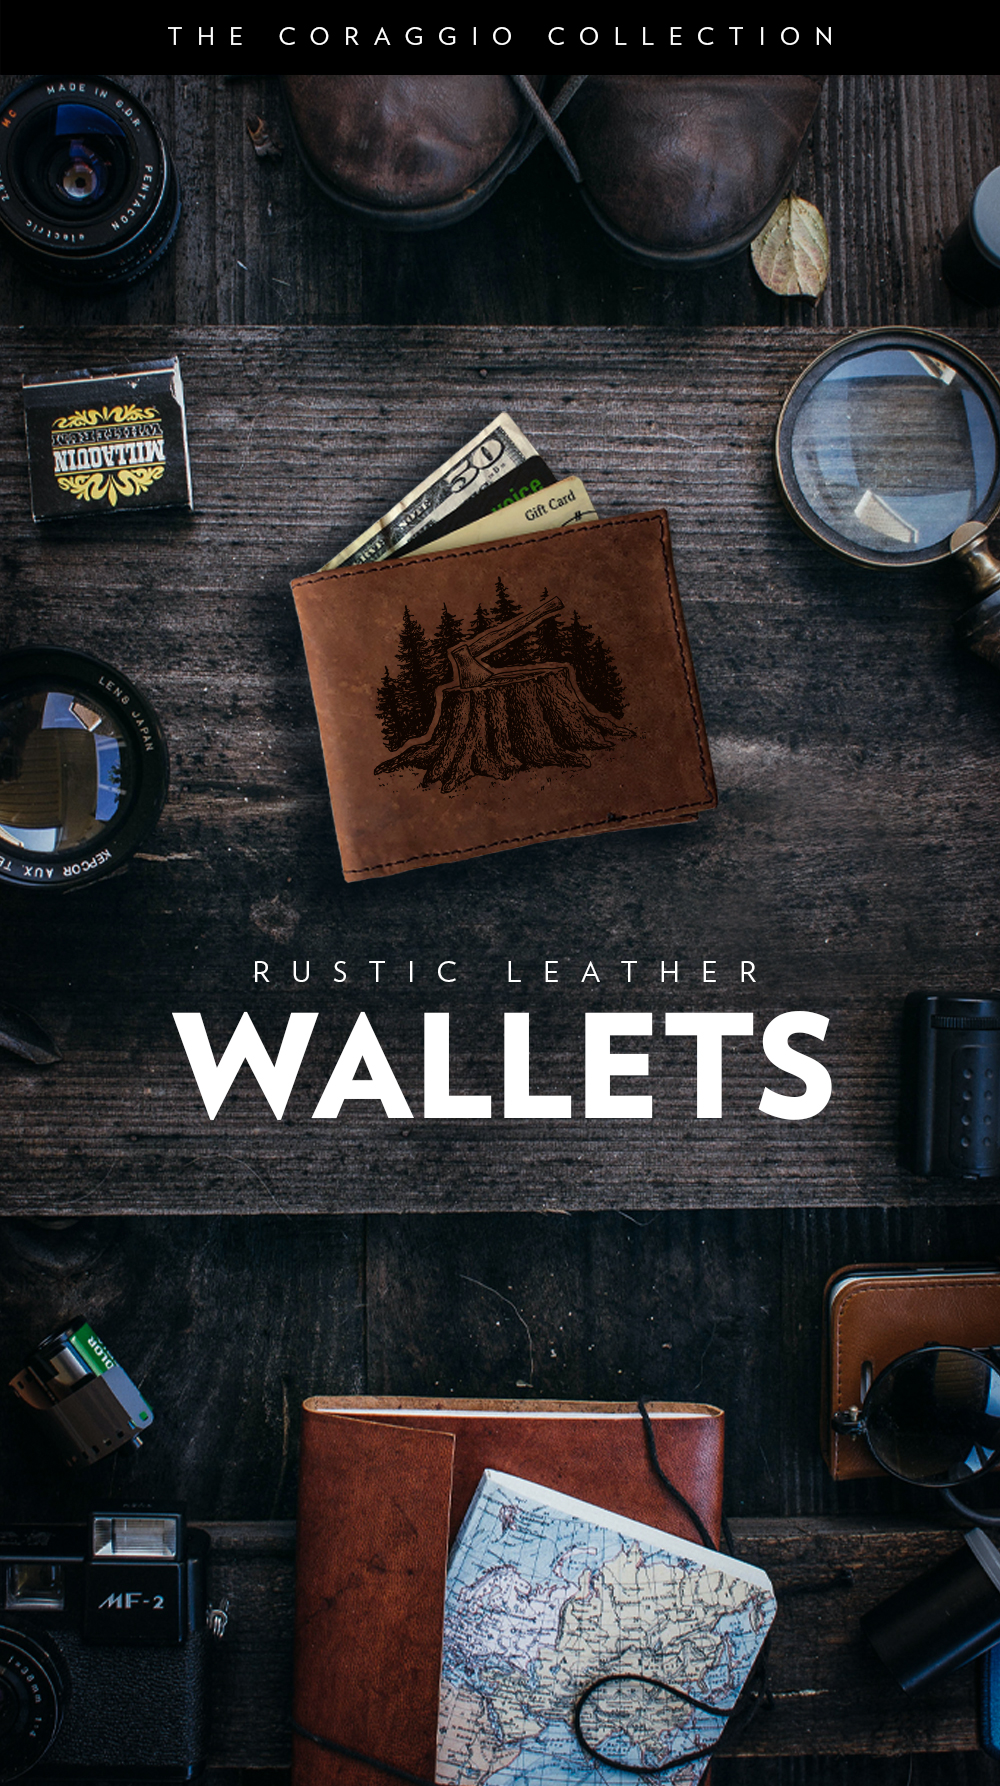 coraggio-wallet-email-banner-product.jpg